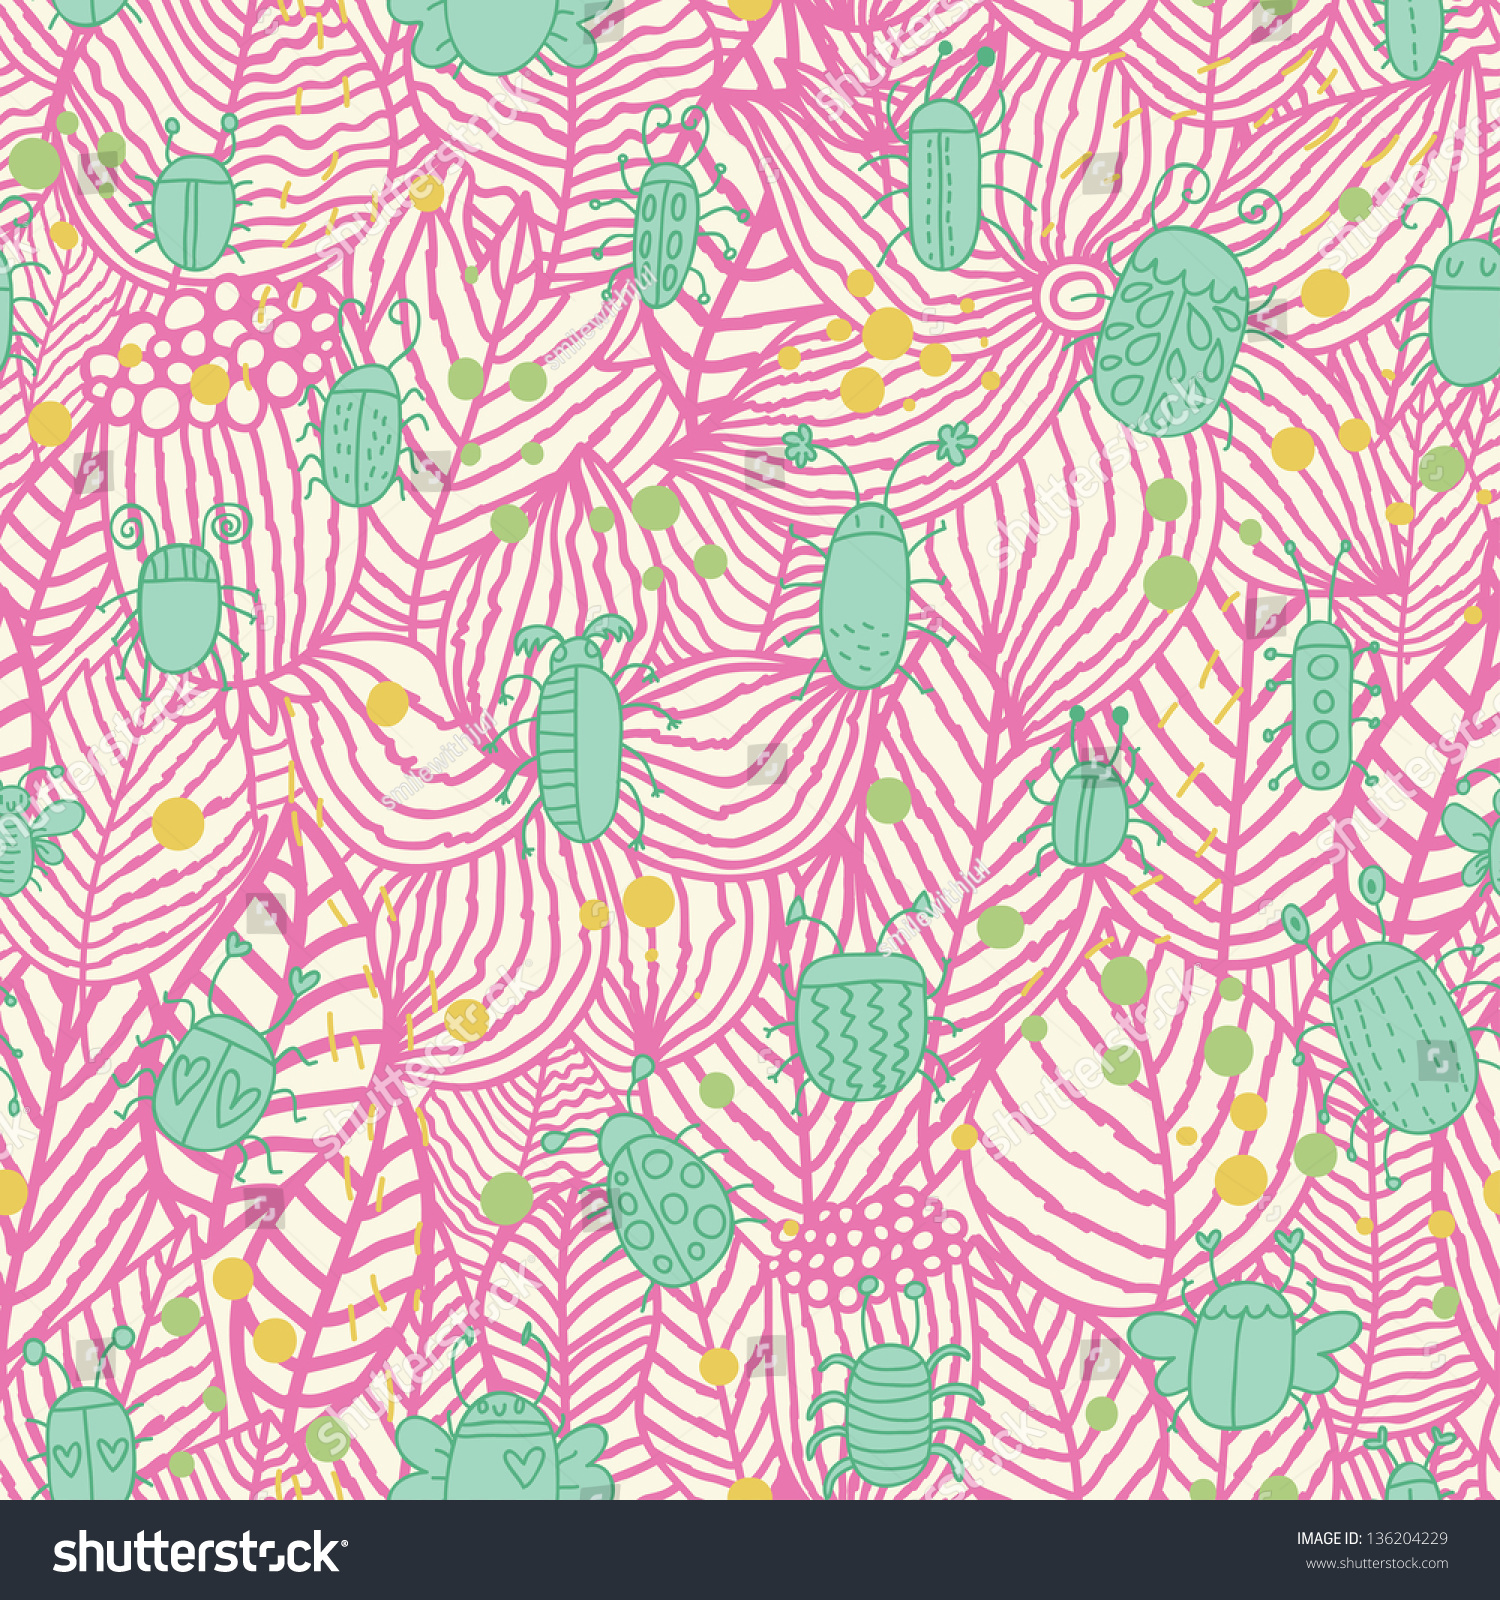 Wallpapers pattern fills web page backgrounds surface textures - Seamless Pattern Can Be Used For Wallpapers Pattern Fills Web Page Backgrounds Surface